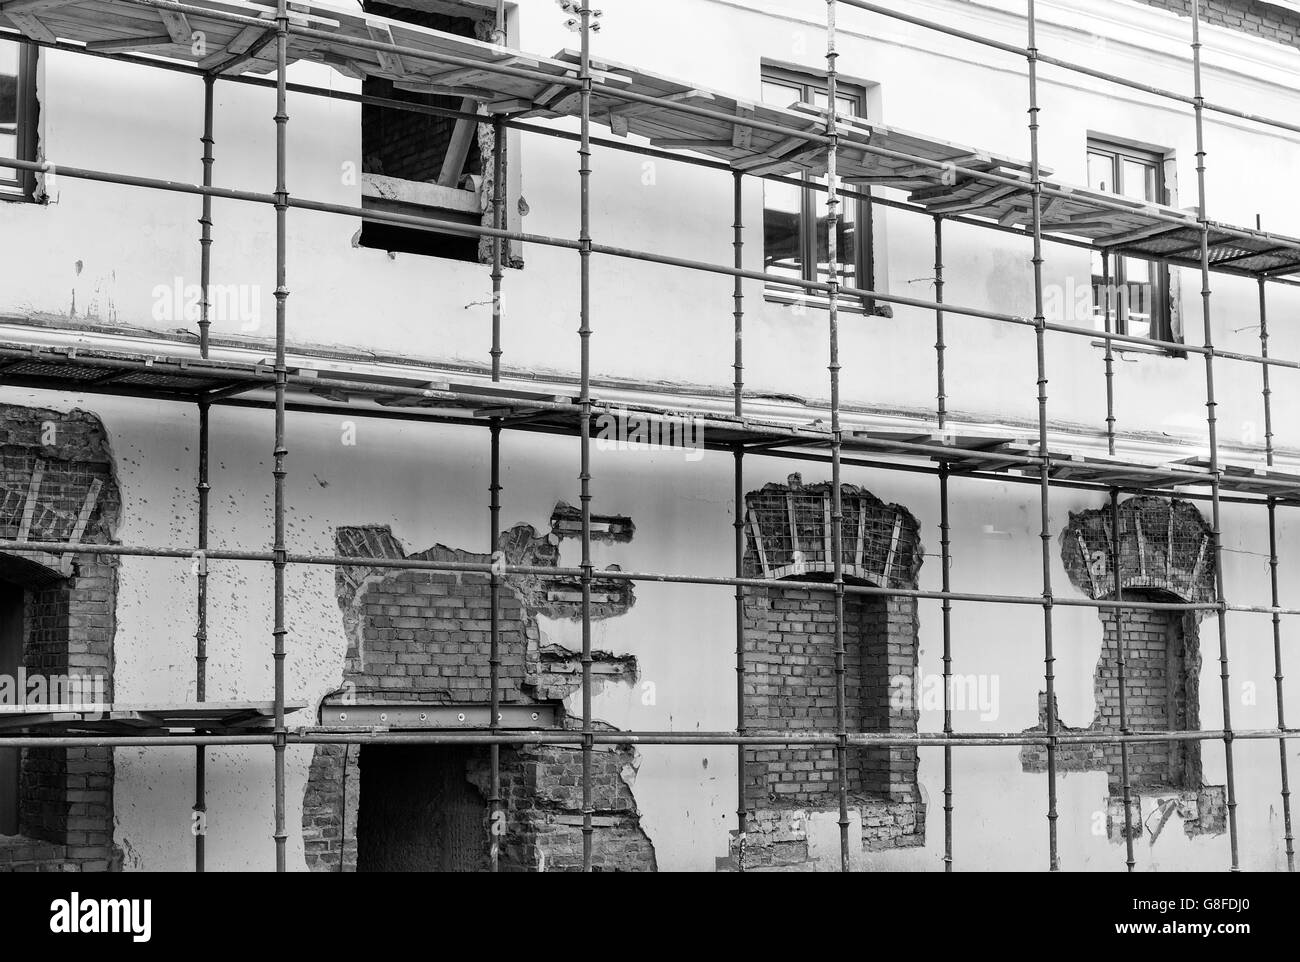 Scaffolding around historic building during the renovation - Stock Image